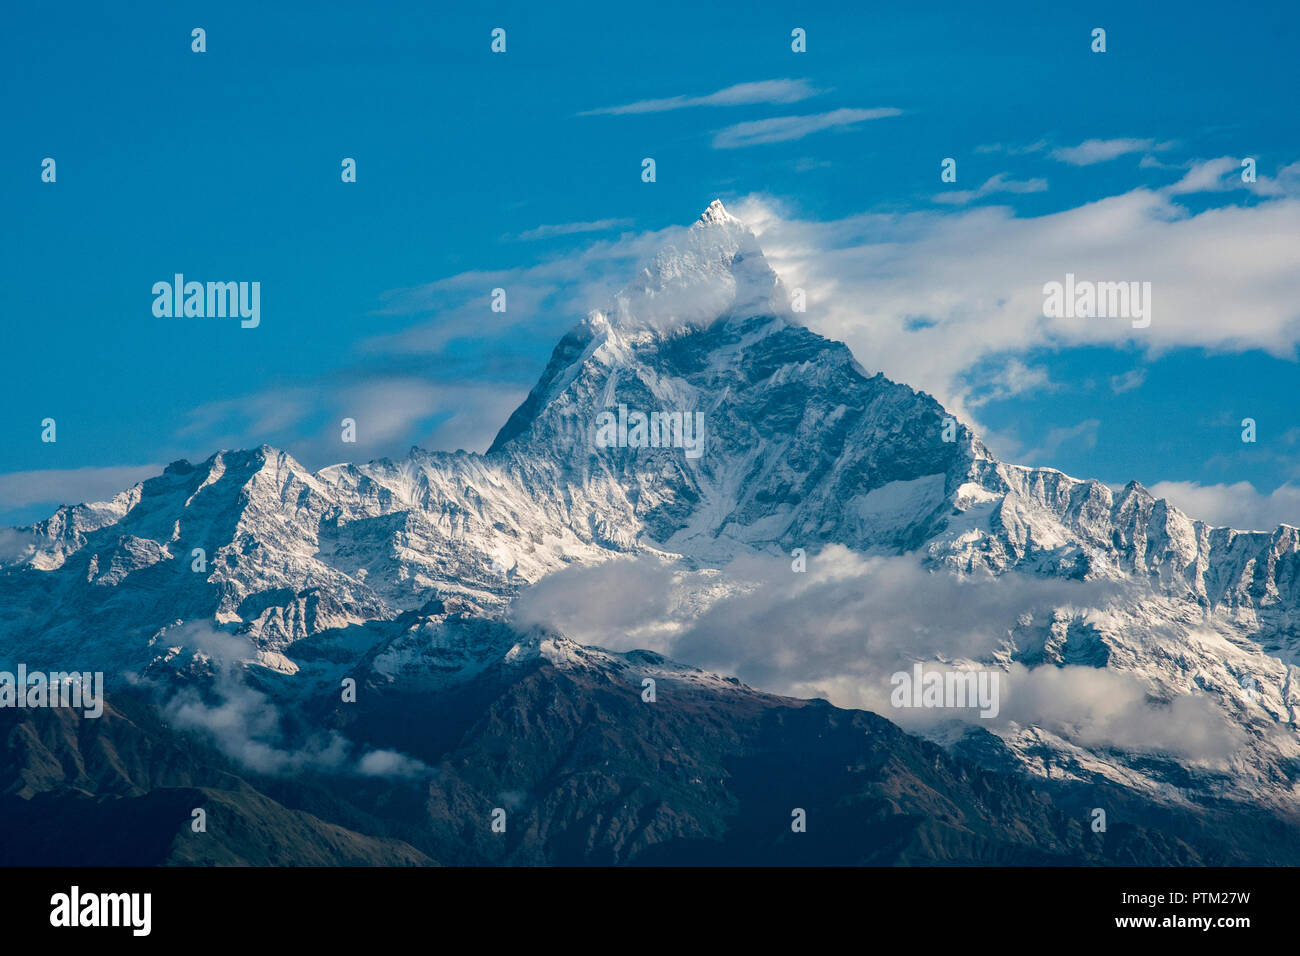 Mount Machapuchare or Fisthail peak near Pokhara in Nepal. - Stock Image